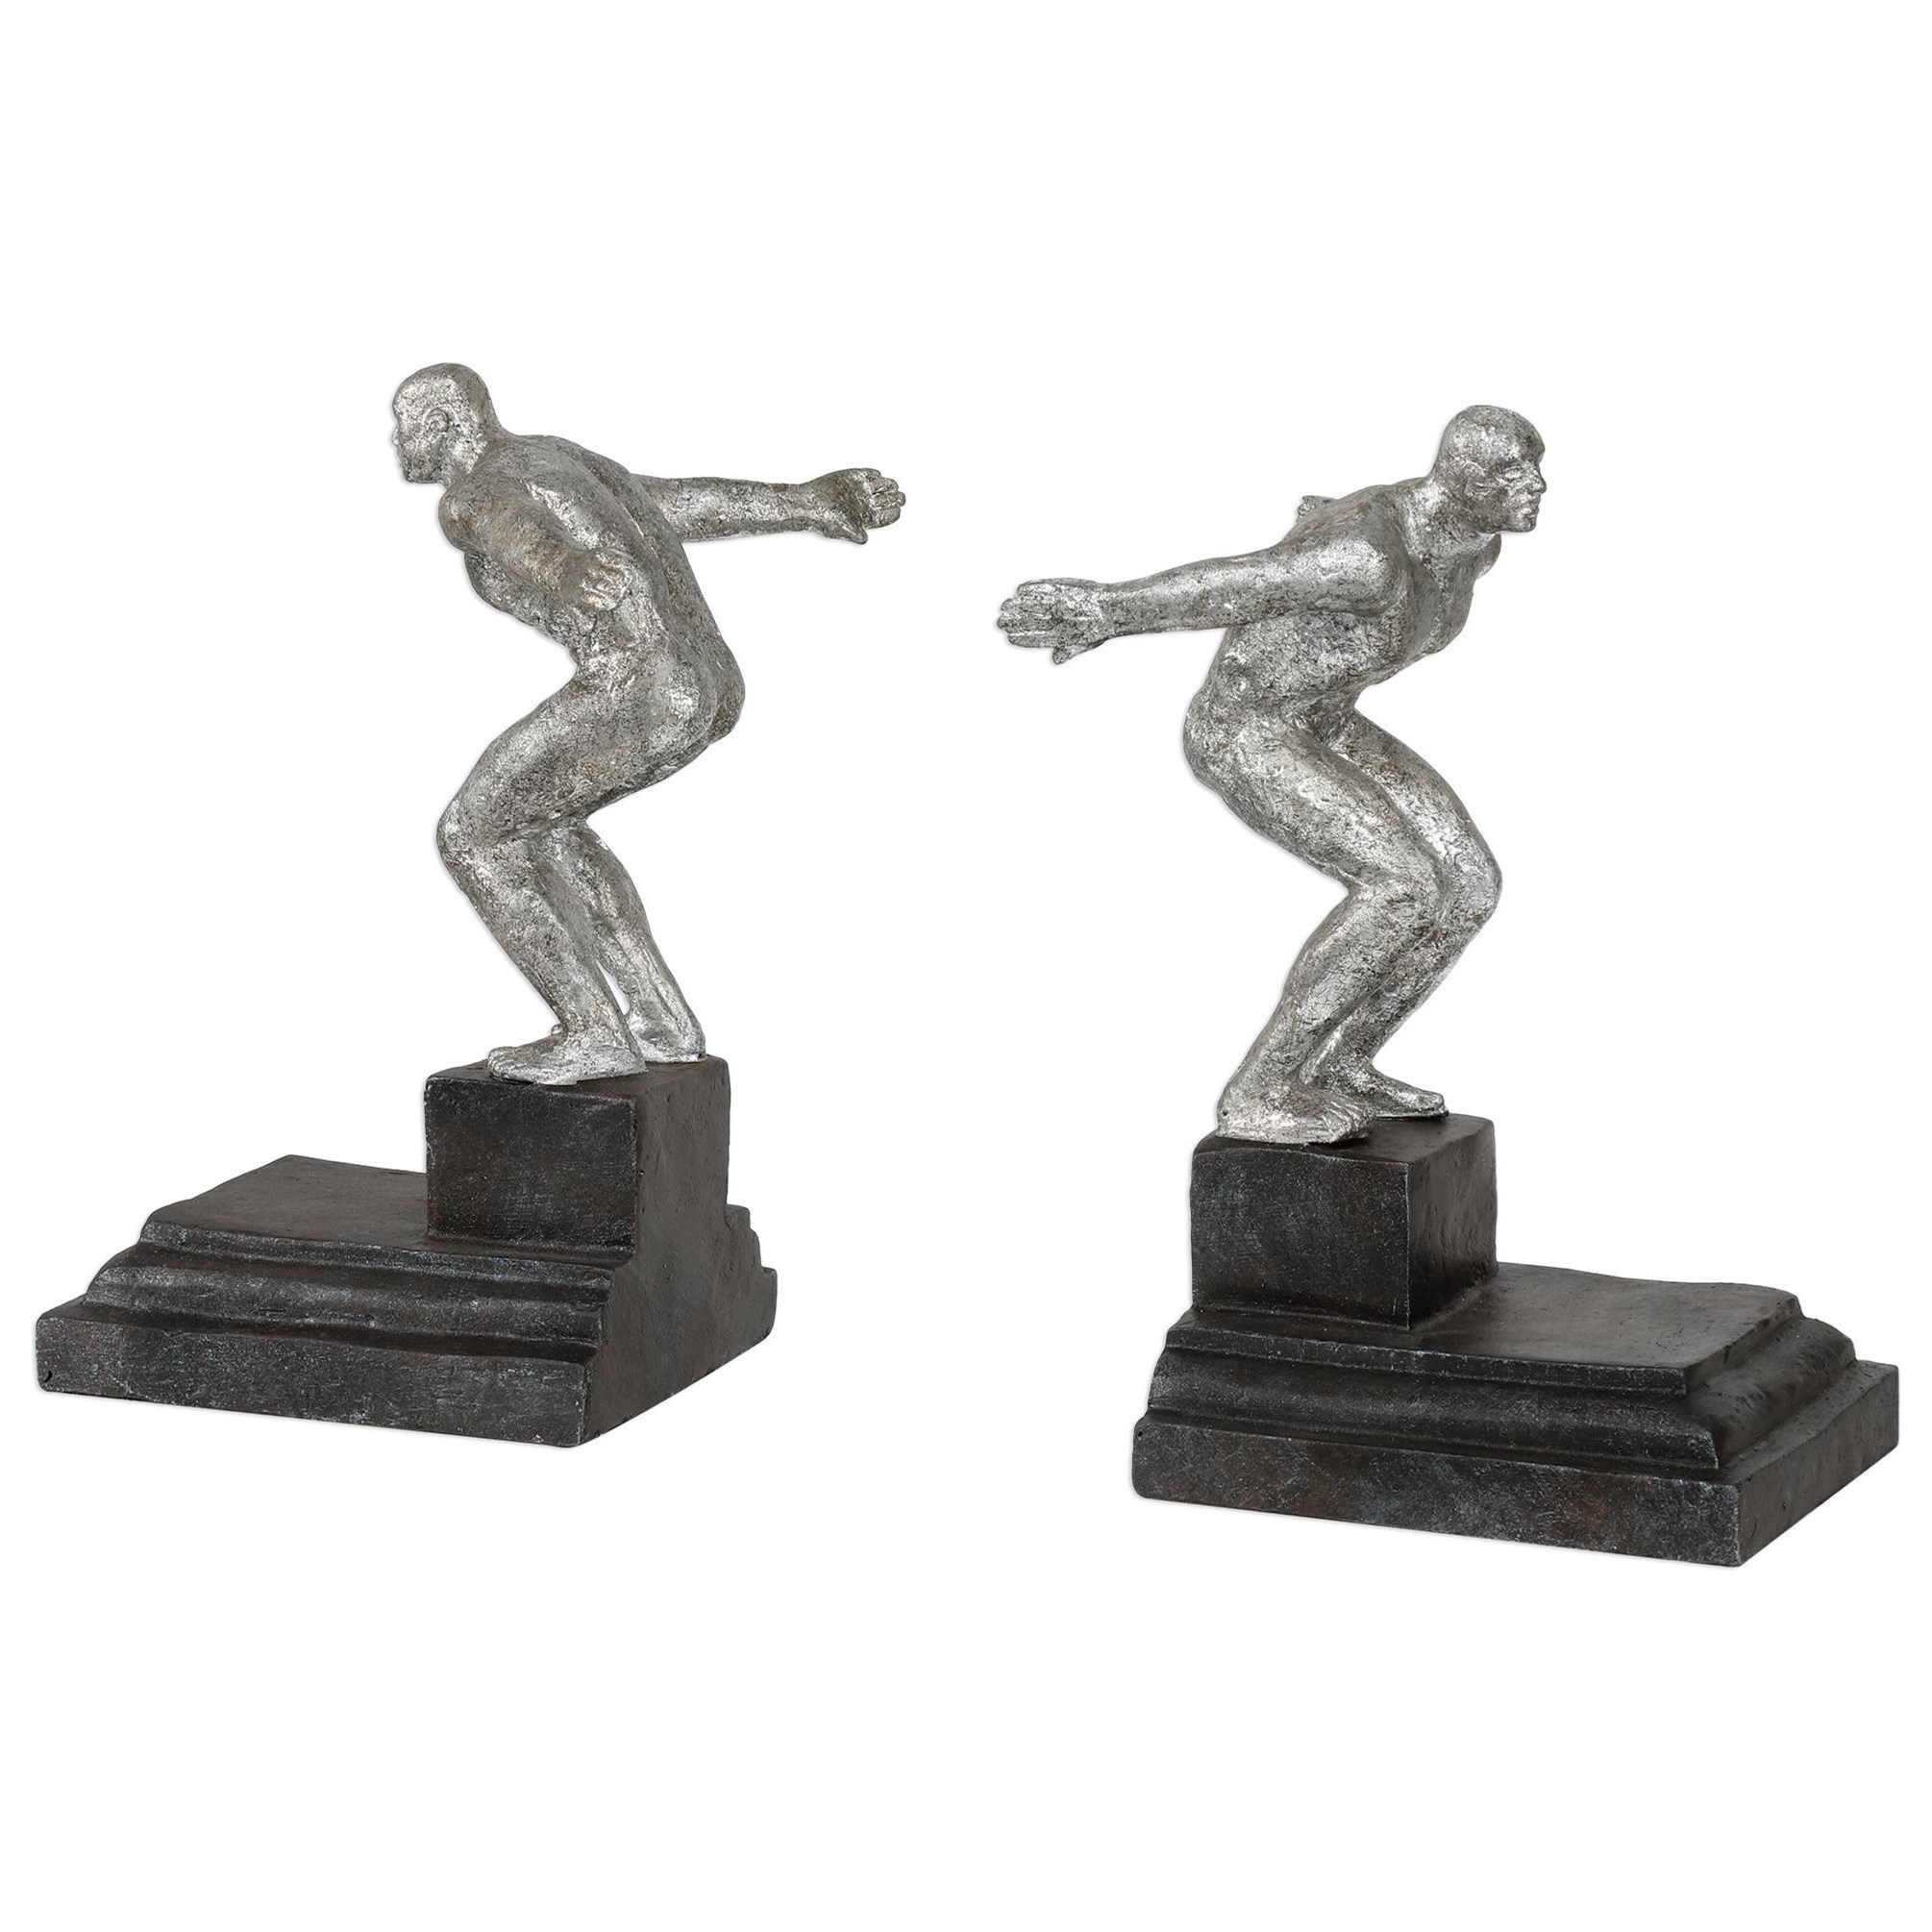 Endurance Silver Bookends, S/2